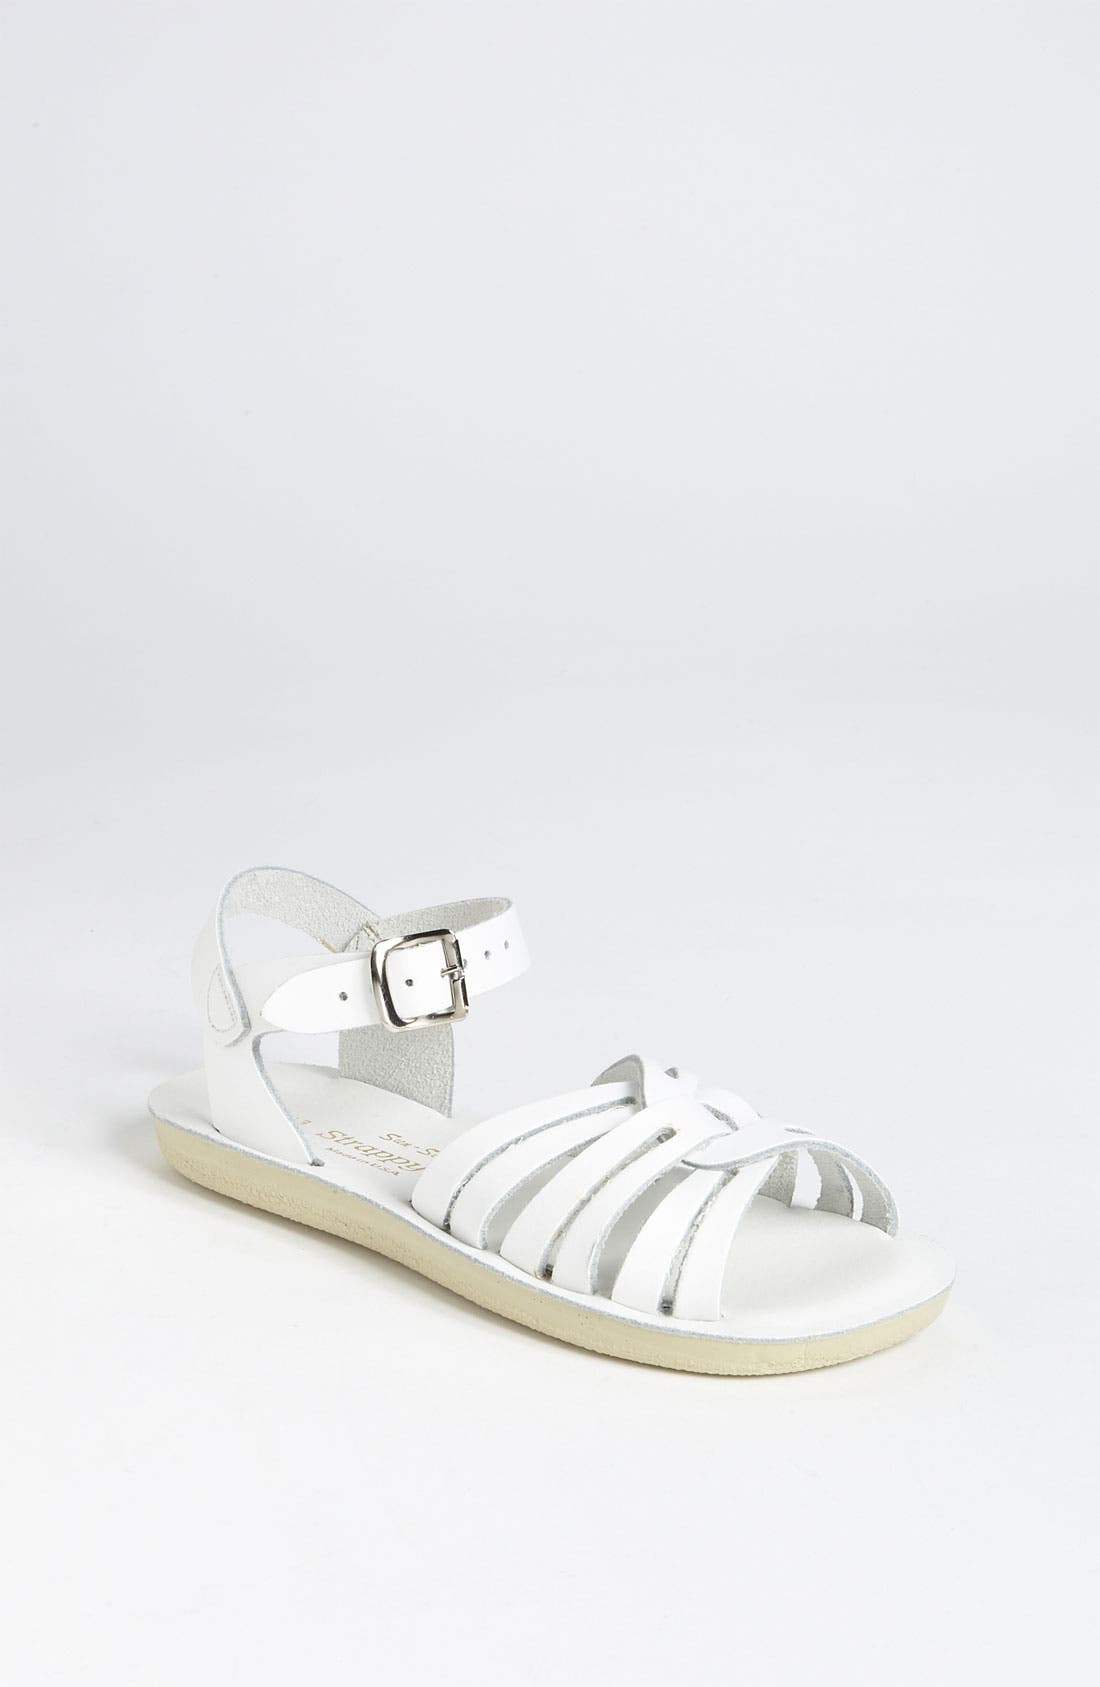 Main Image - Salt Water Sandals by Hoy Strappy Sandal (Walker, Toddler & Little Kid)